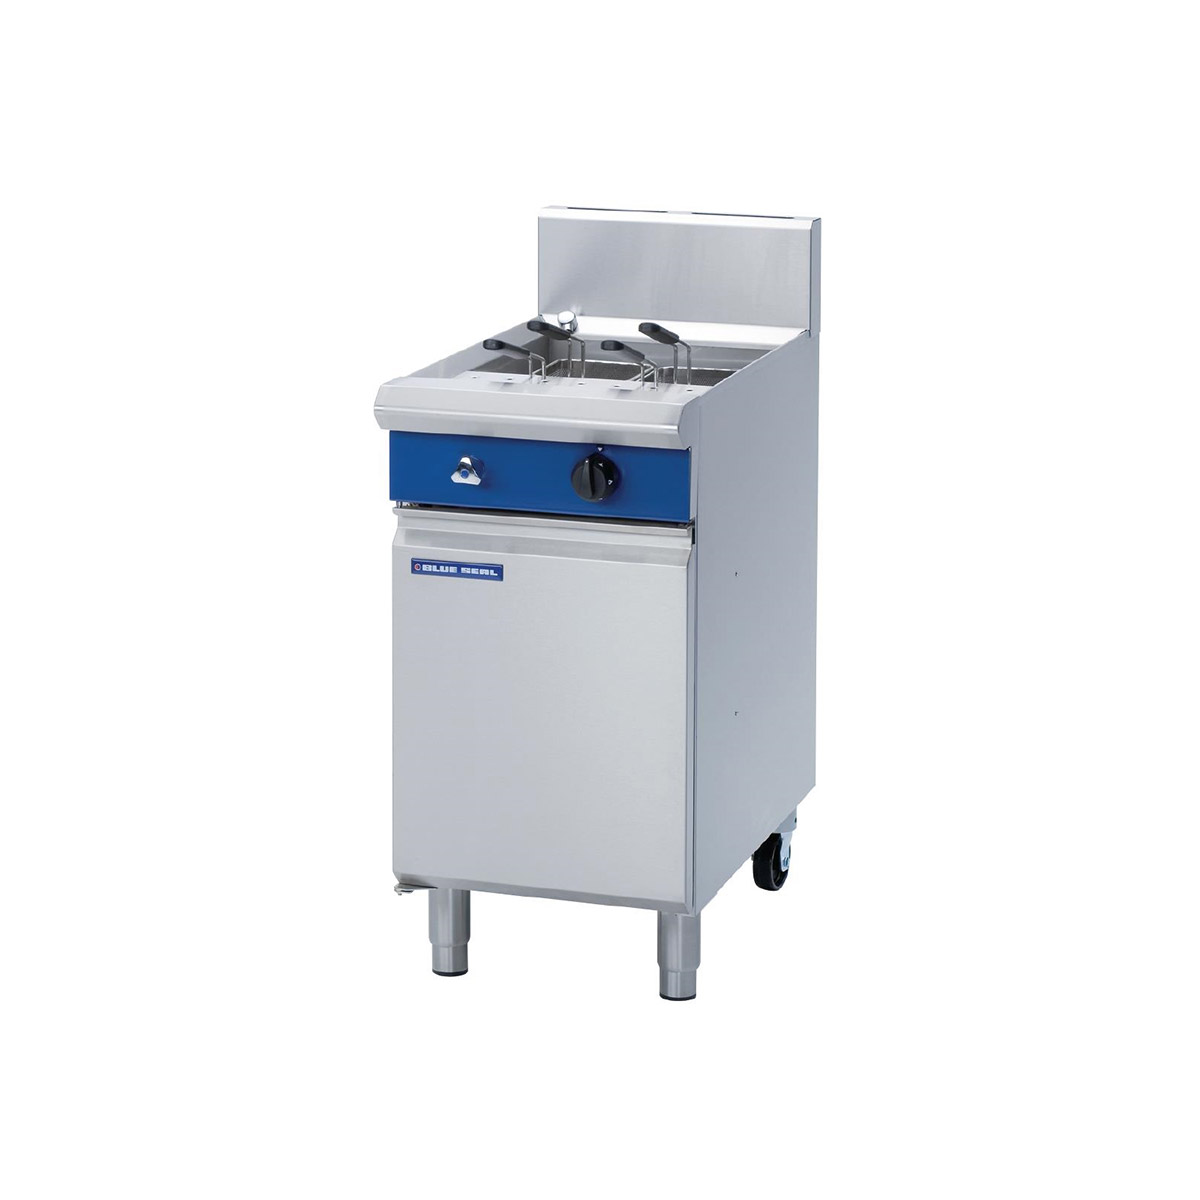 Blue Seal Evolution Single Tank Propane Gas Pasta Cooker 400mm